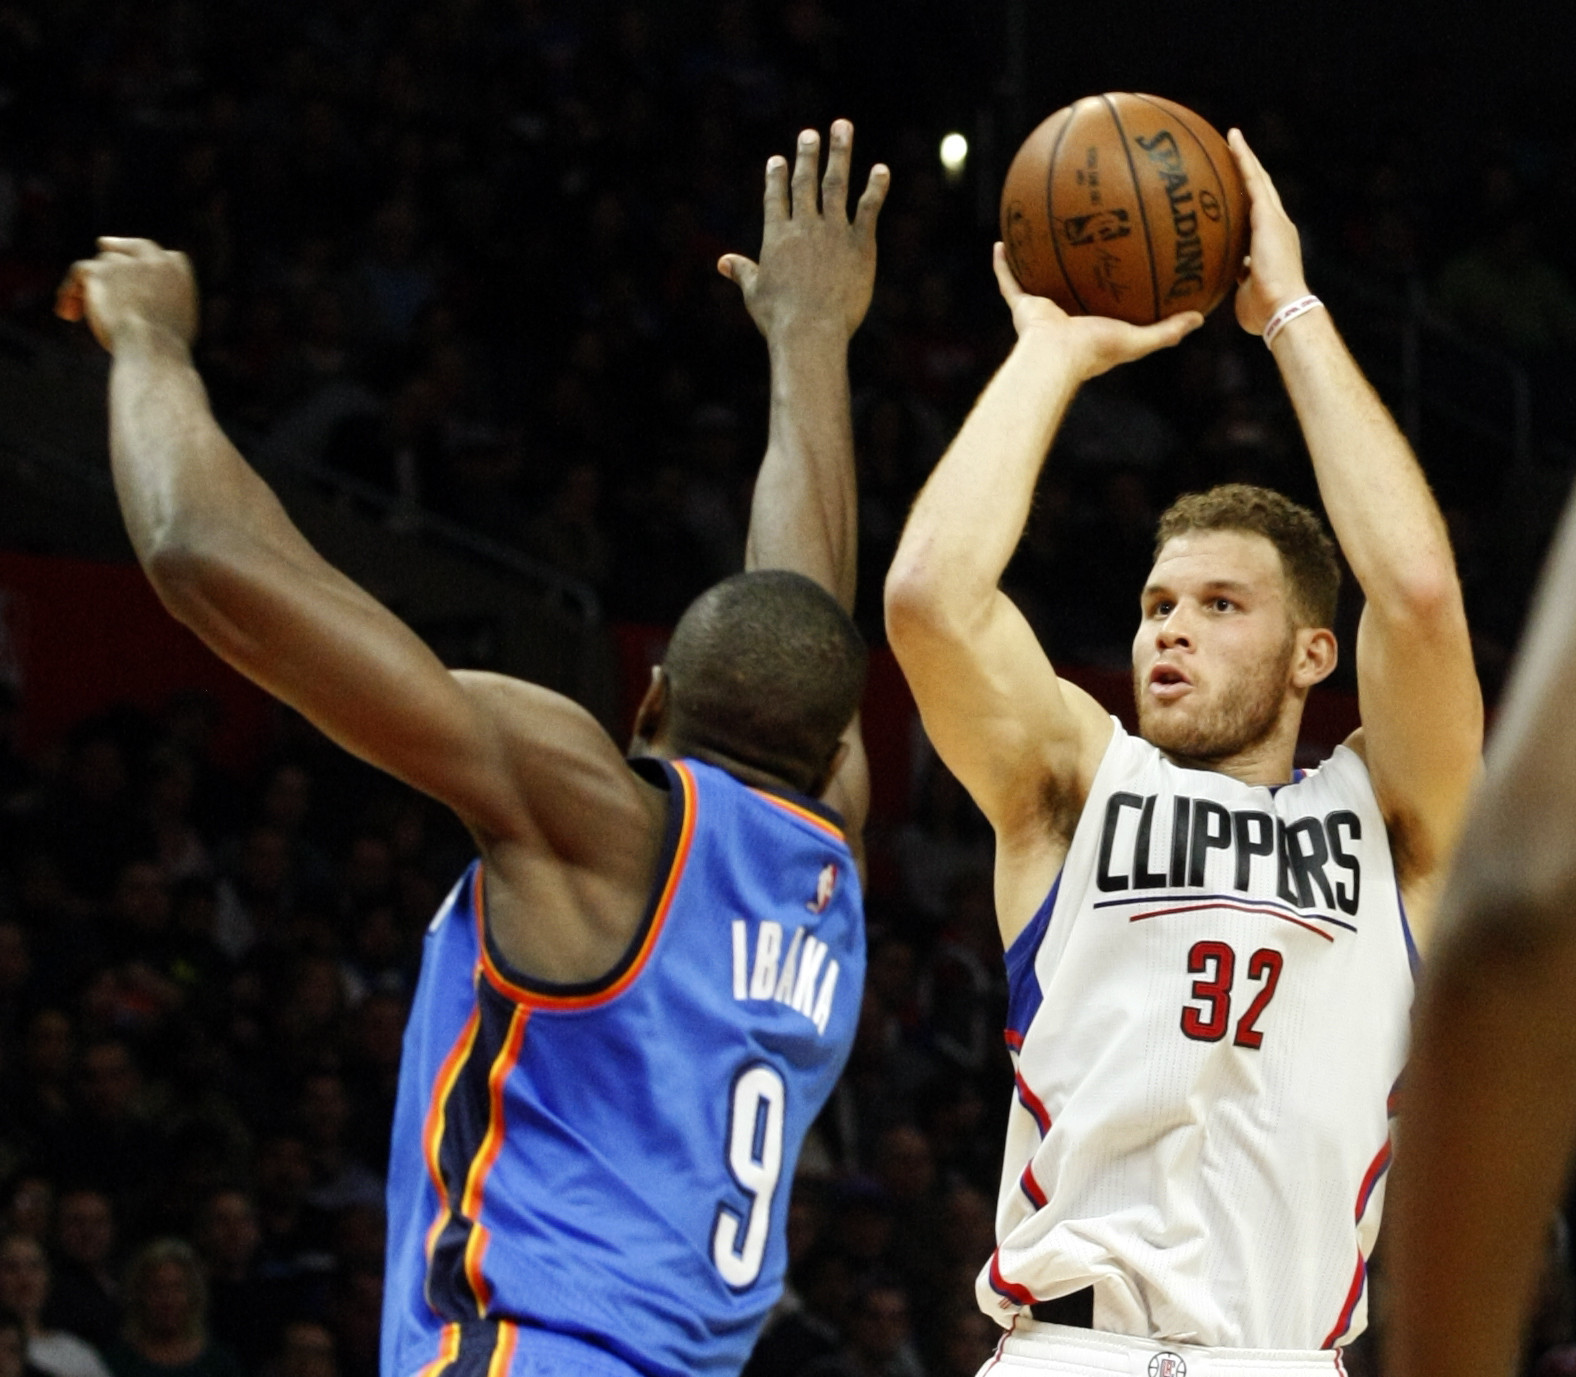 La-sp-cn-blake-griffin-suspension-20160127